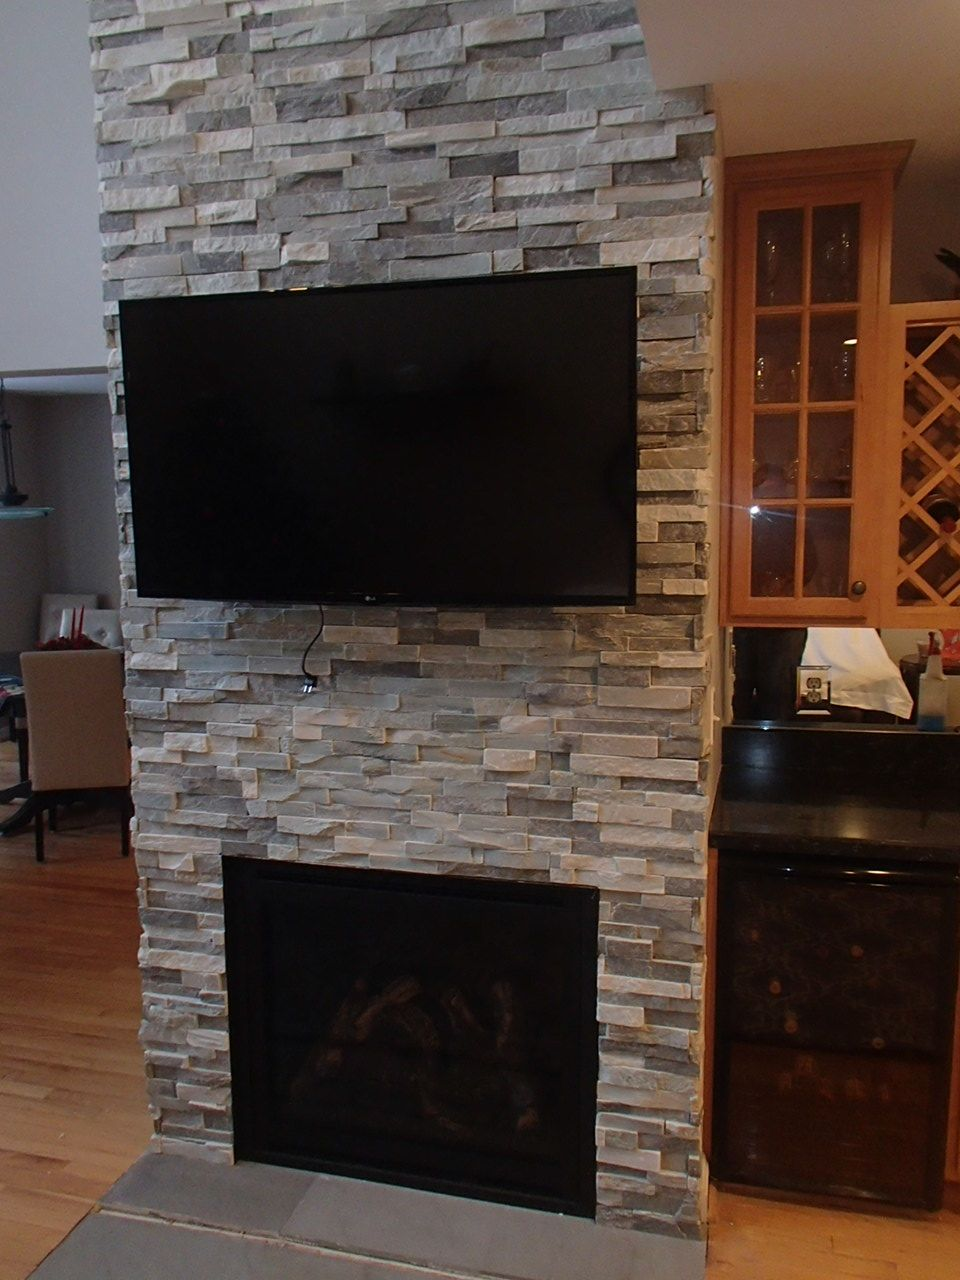 The bayport gas fireplace is perfect for anyone looking for an